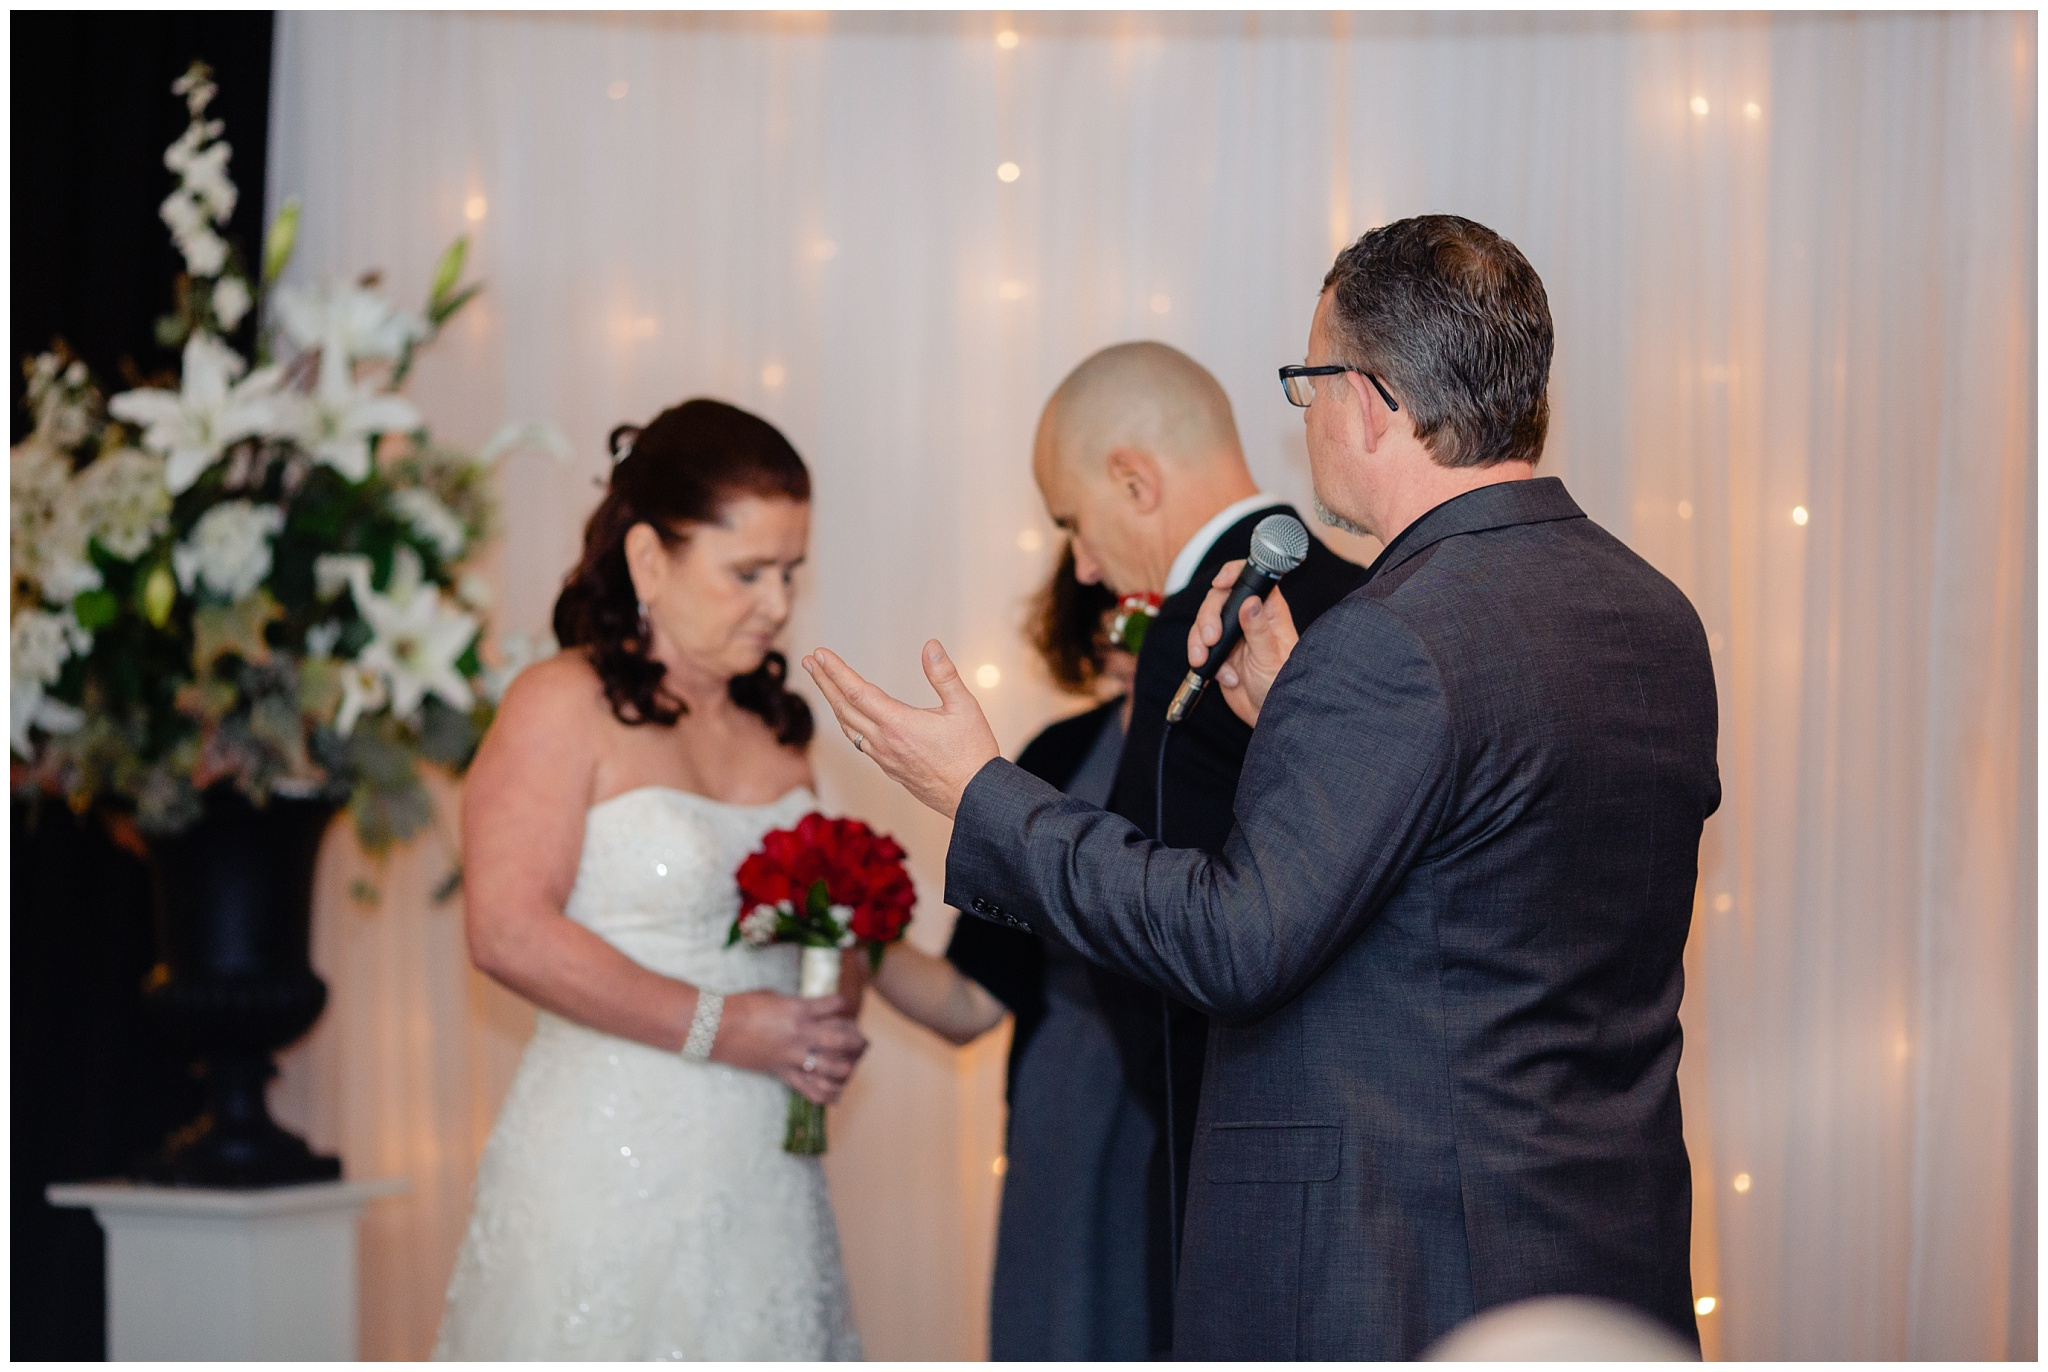 White Rock Intimate Wedding 5 Star Catering Venue Surrey BC Middle Aged Couple_0006.jpg